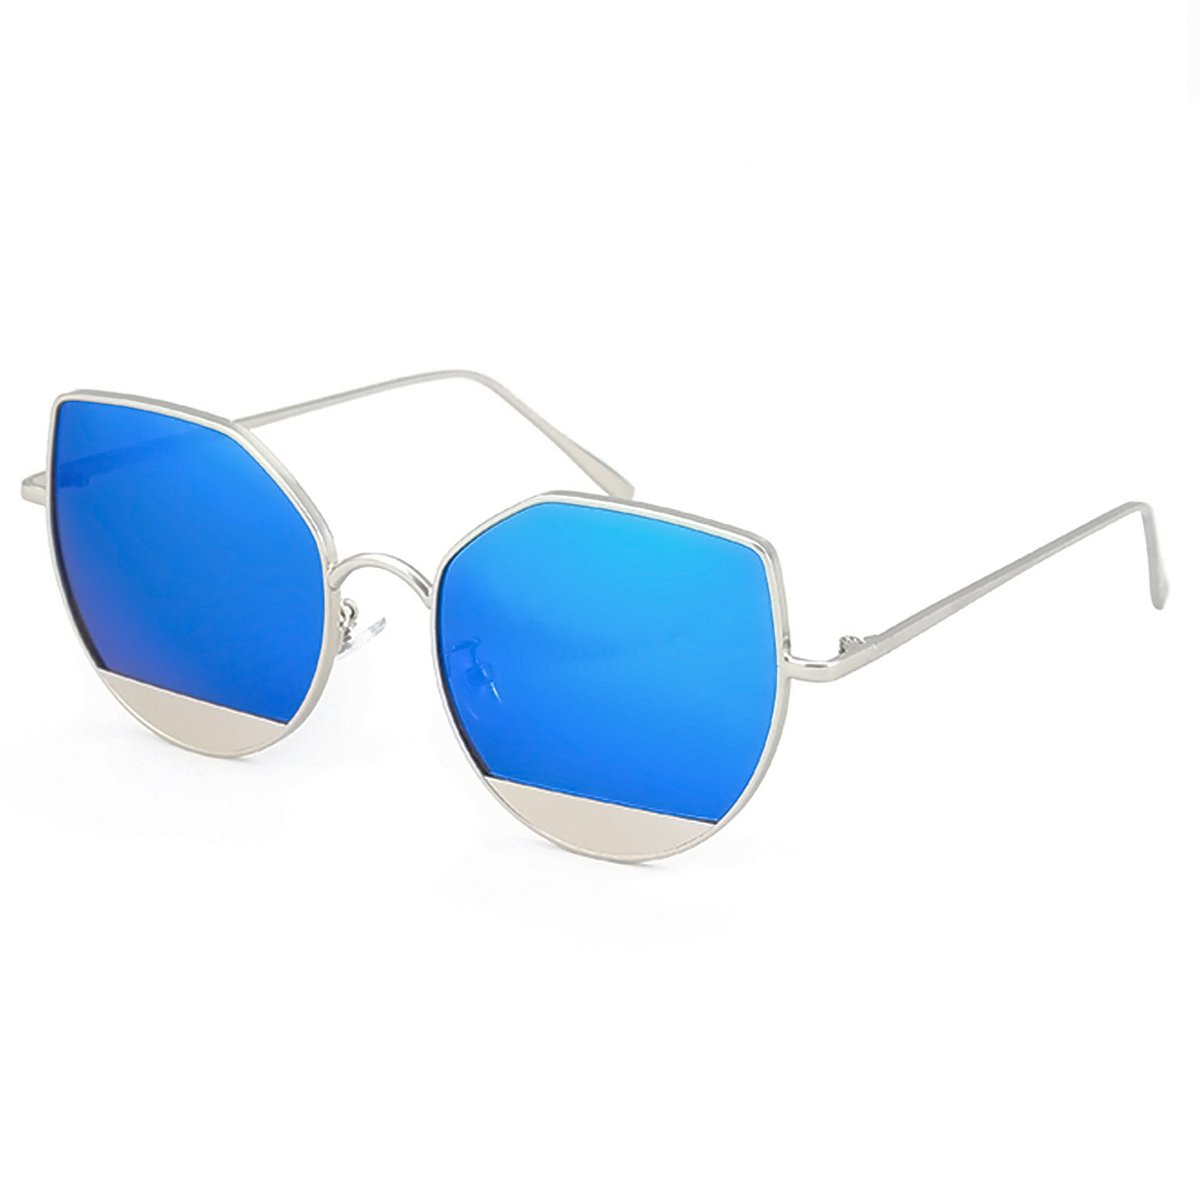 WISH CLUB Cat Eye Sunglasses Coating Mirrored Flat Lenses Fashion Metal Frame Women UV 400 (Blue)